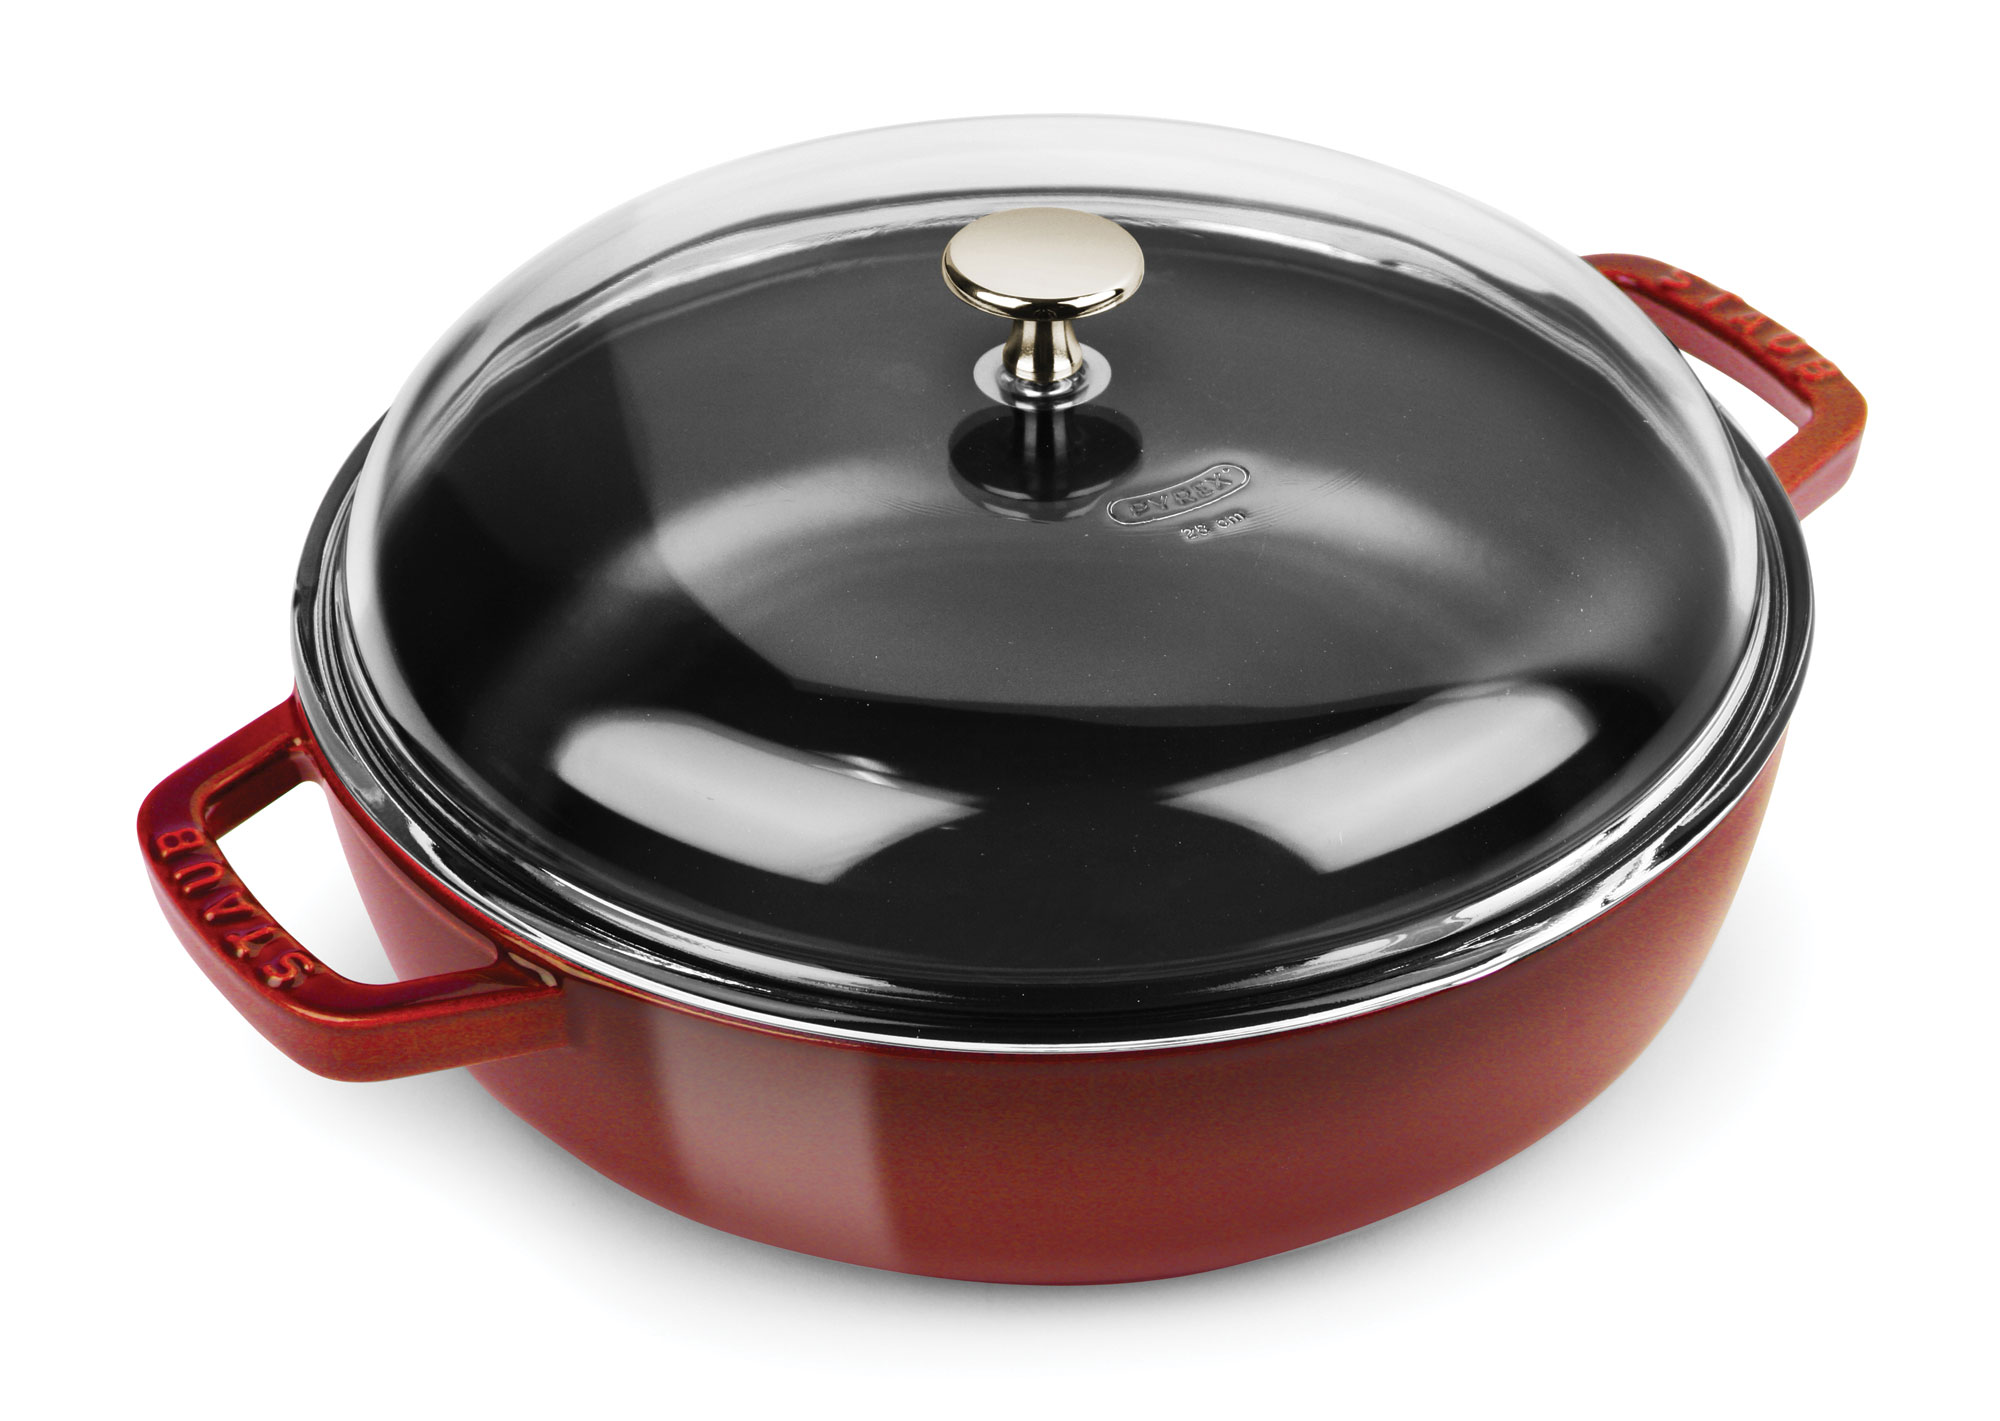 staub universal pans on sale cutlery and more. Black Bedroom Furniture Sets. Home Design Ideas